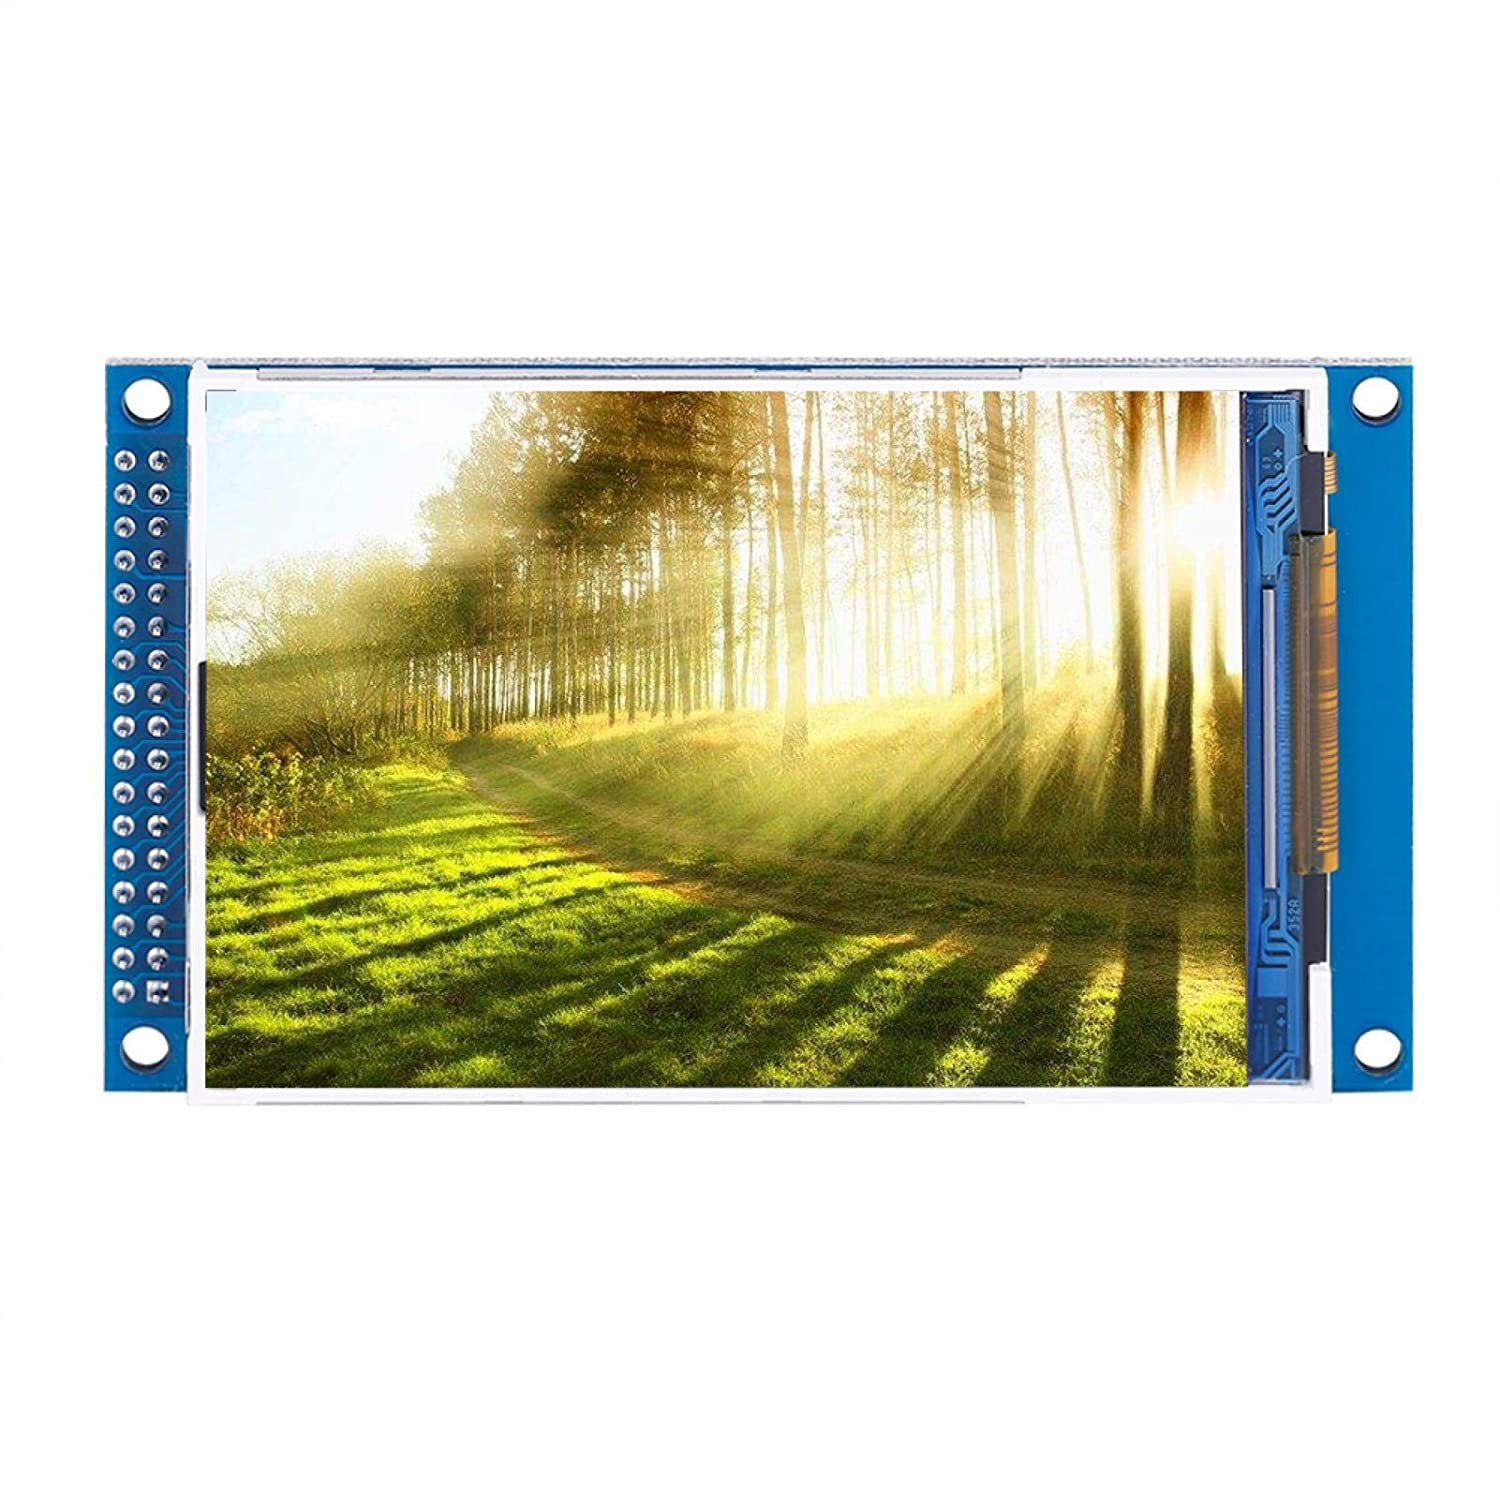 Display Module Board 3.5 Inch Indefinitely LCD Wide for Sale Special Price Viewing Video